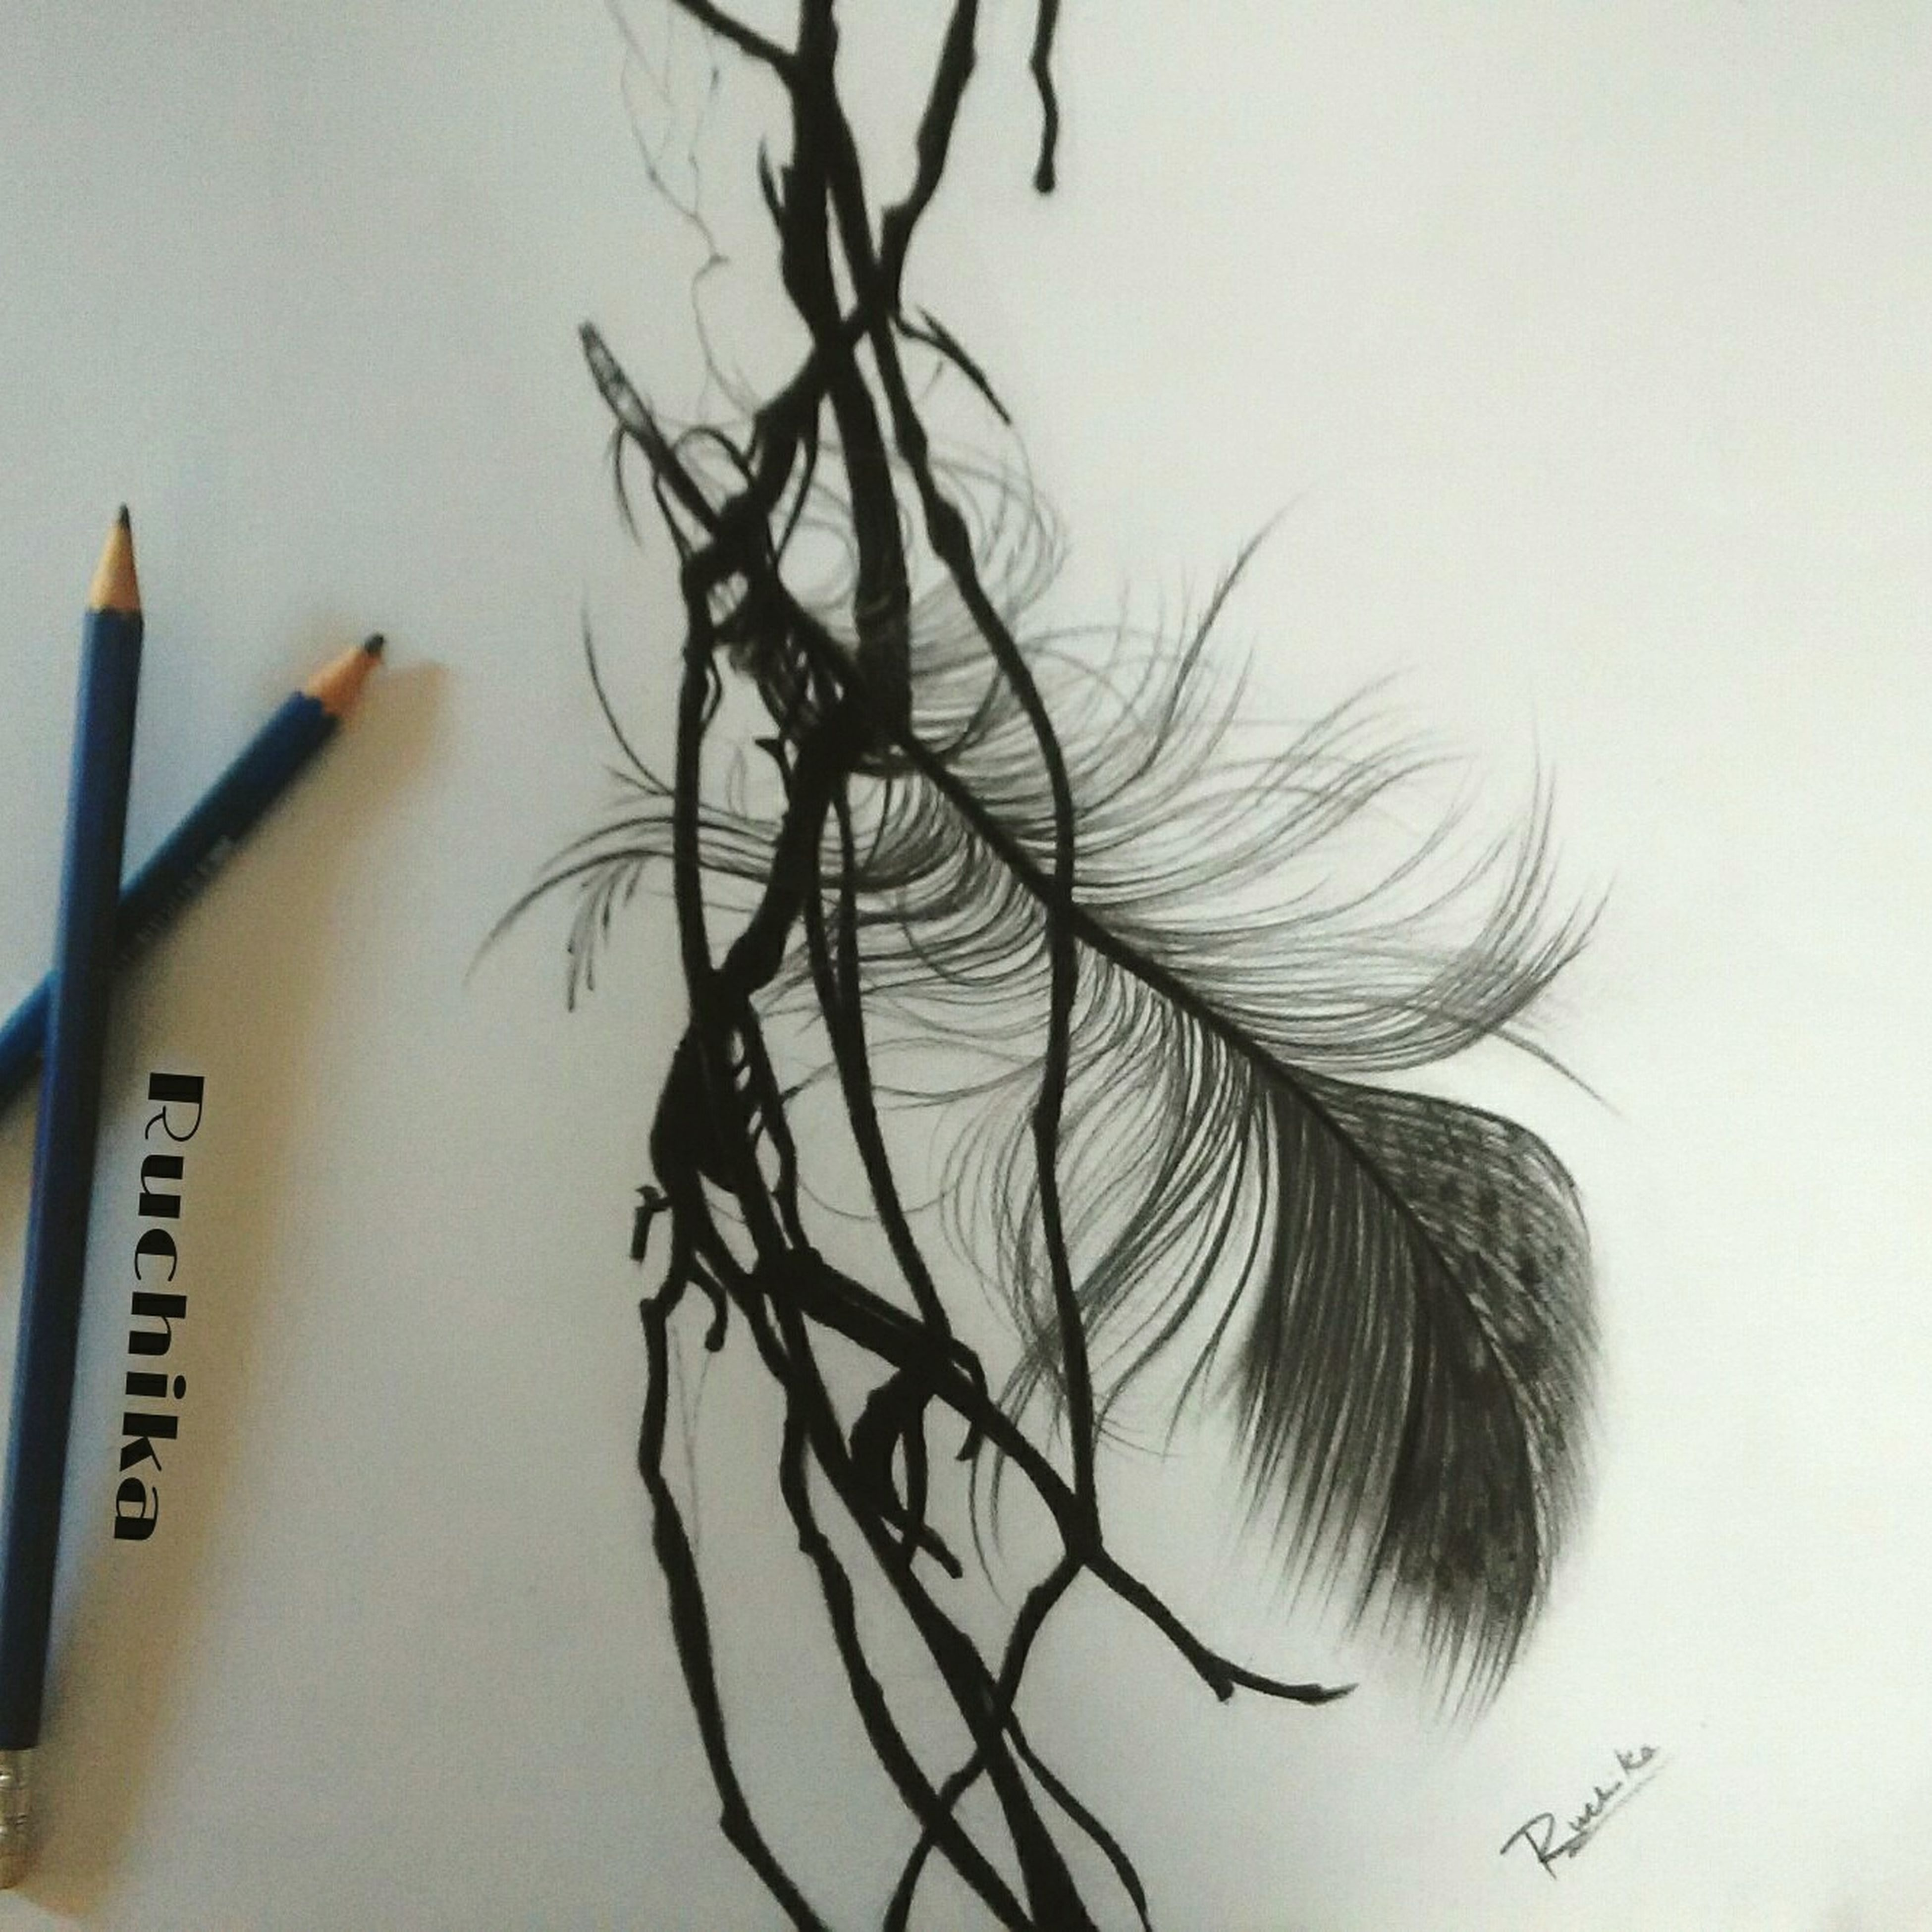 Freedom ArtWork Art MyfirstEyemphoto Feathers Feather  Check This Out Pictureoftheday Draw Art, Drawing, Creativity Drawing ✏ Pencil Drawing Pencil Sketch  My Drawings My Draw ♥ Artist Ruchika_arts